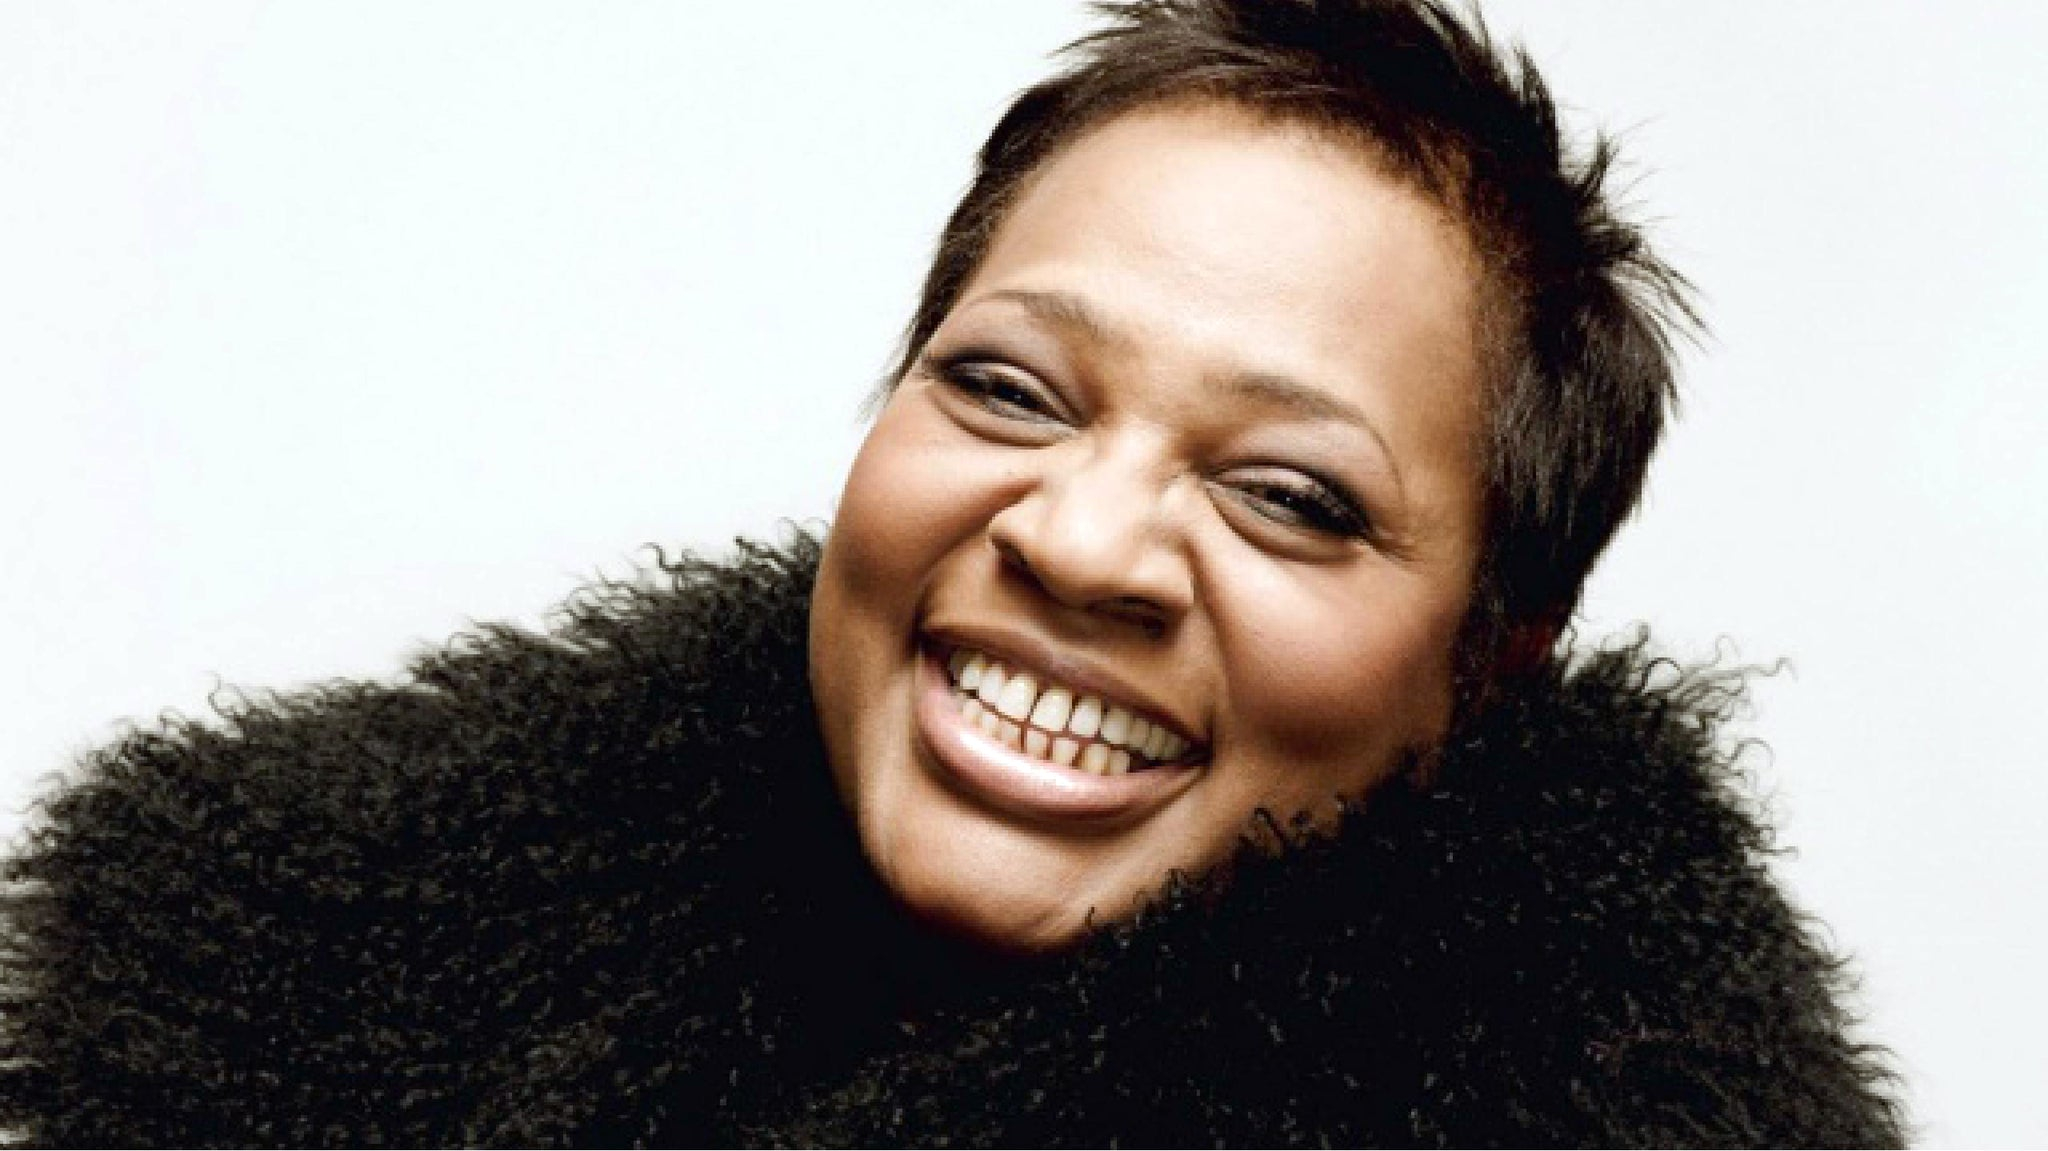 Pure magic from Jocelyn Brown 😍